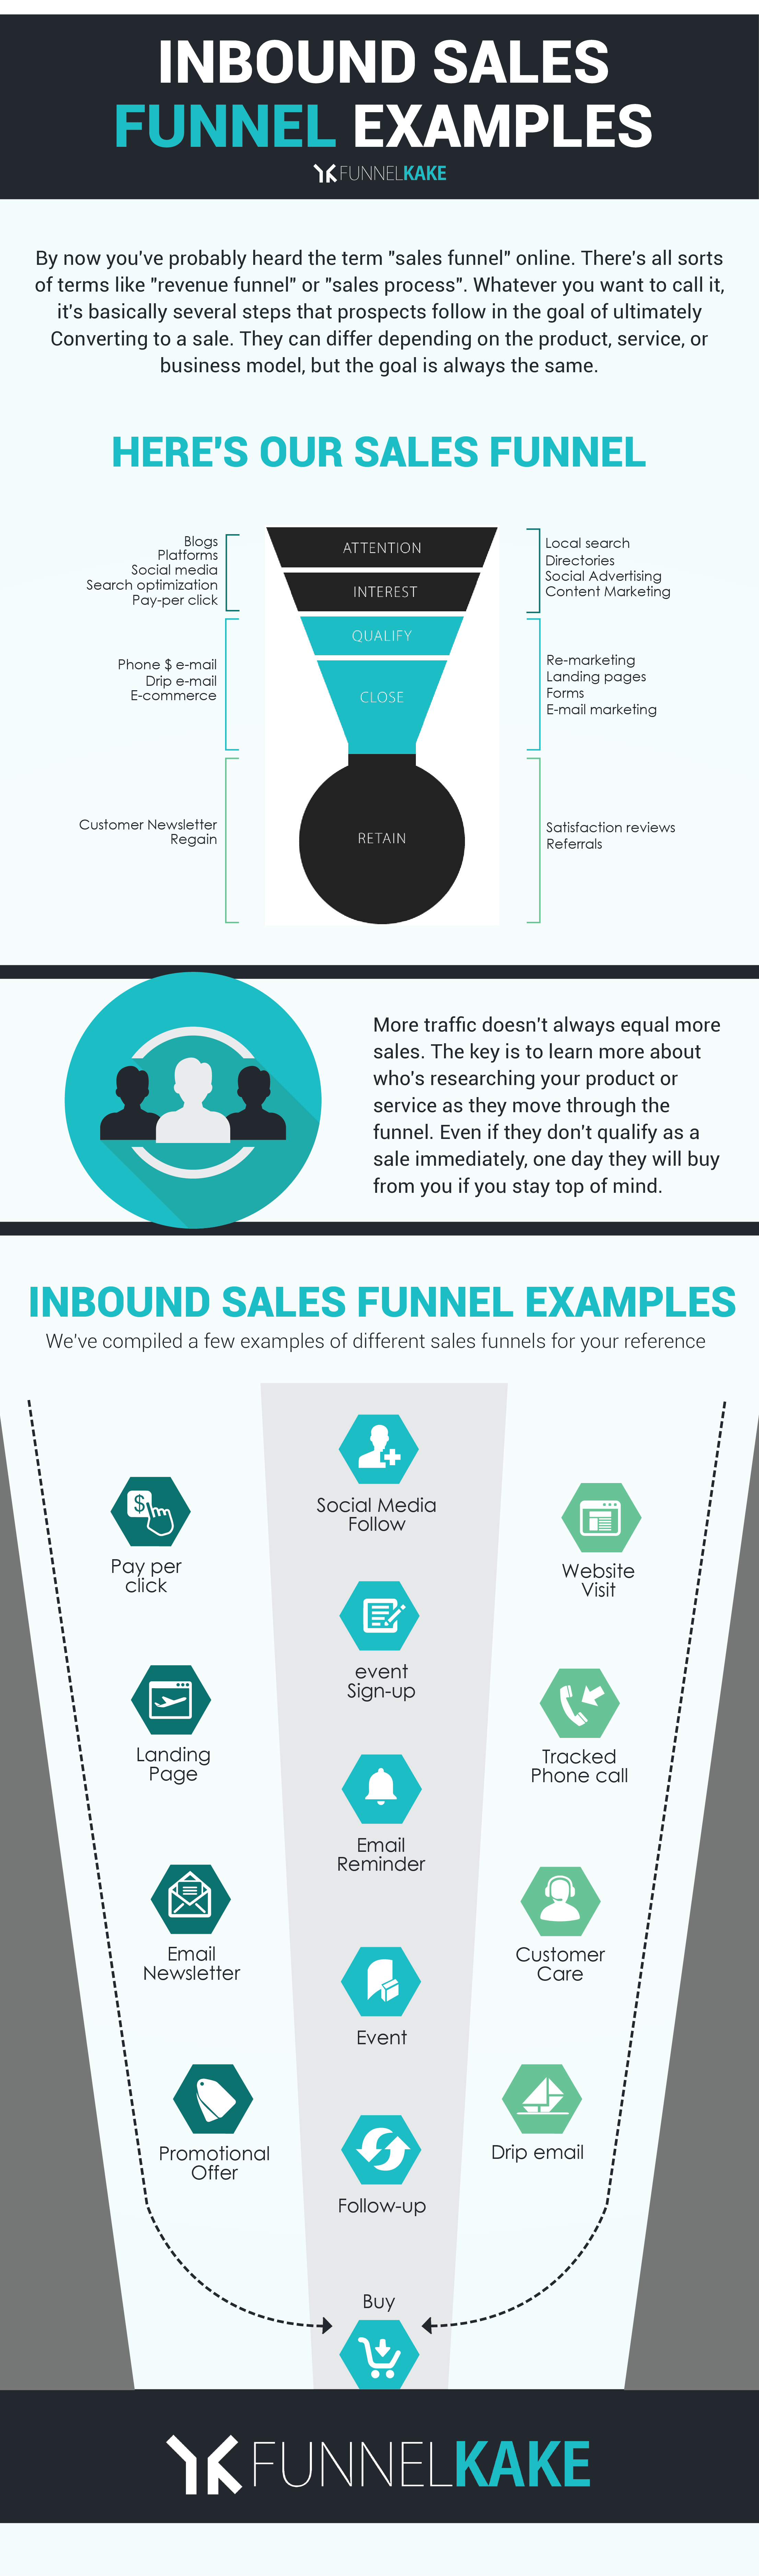 inbound sales funnel